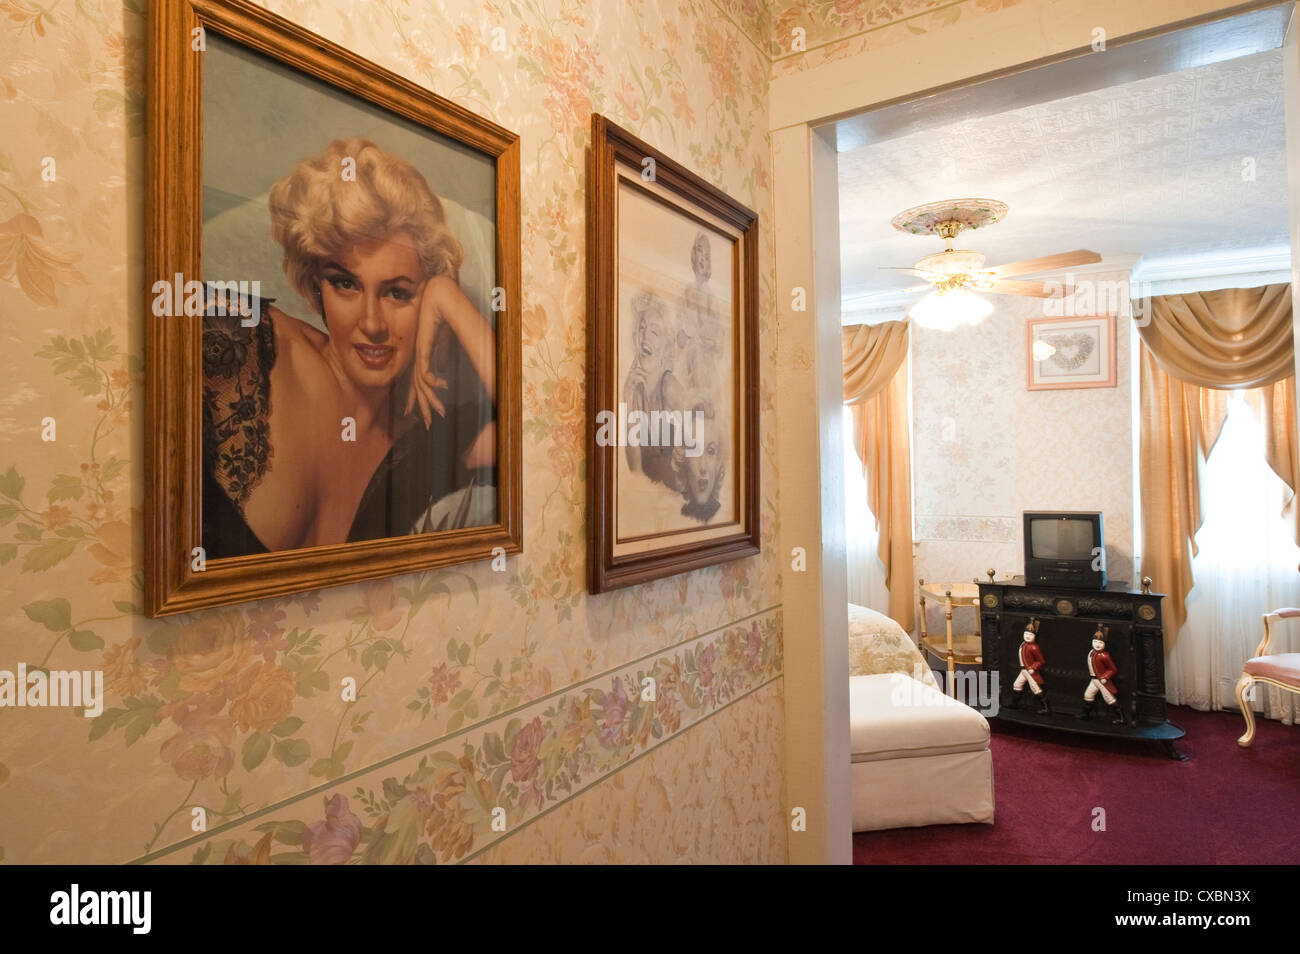 Marilyn Monroe's room at the Edith Palmer's Country Inn, a Victorian home built in 1863, Virginia City. - Stock Image